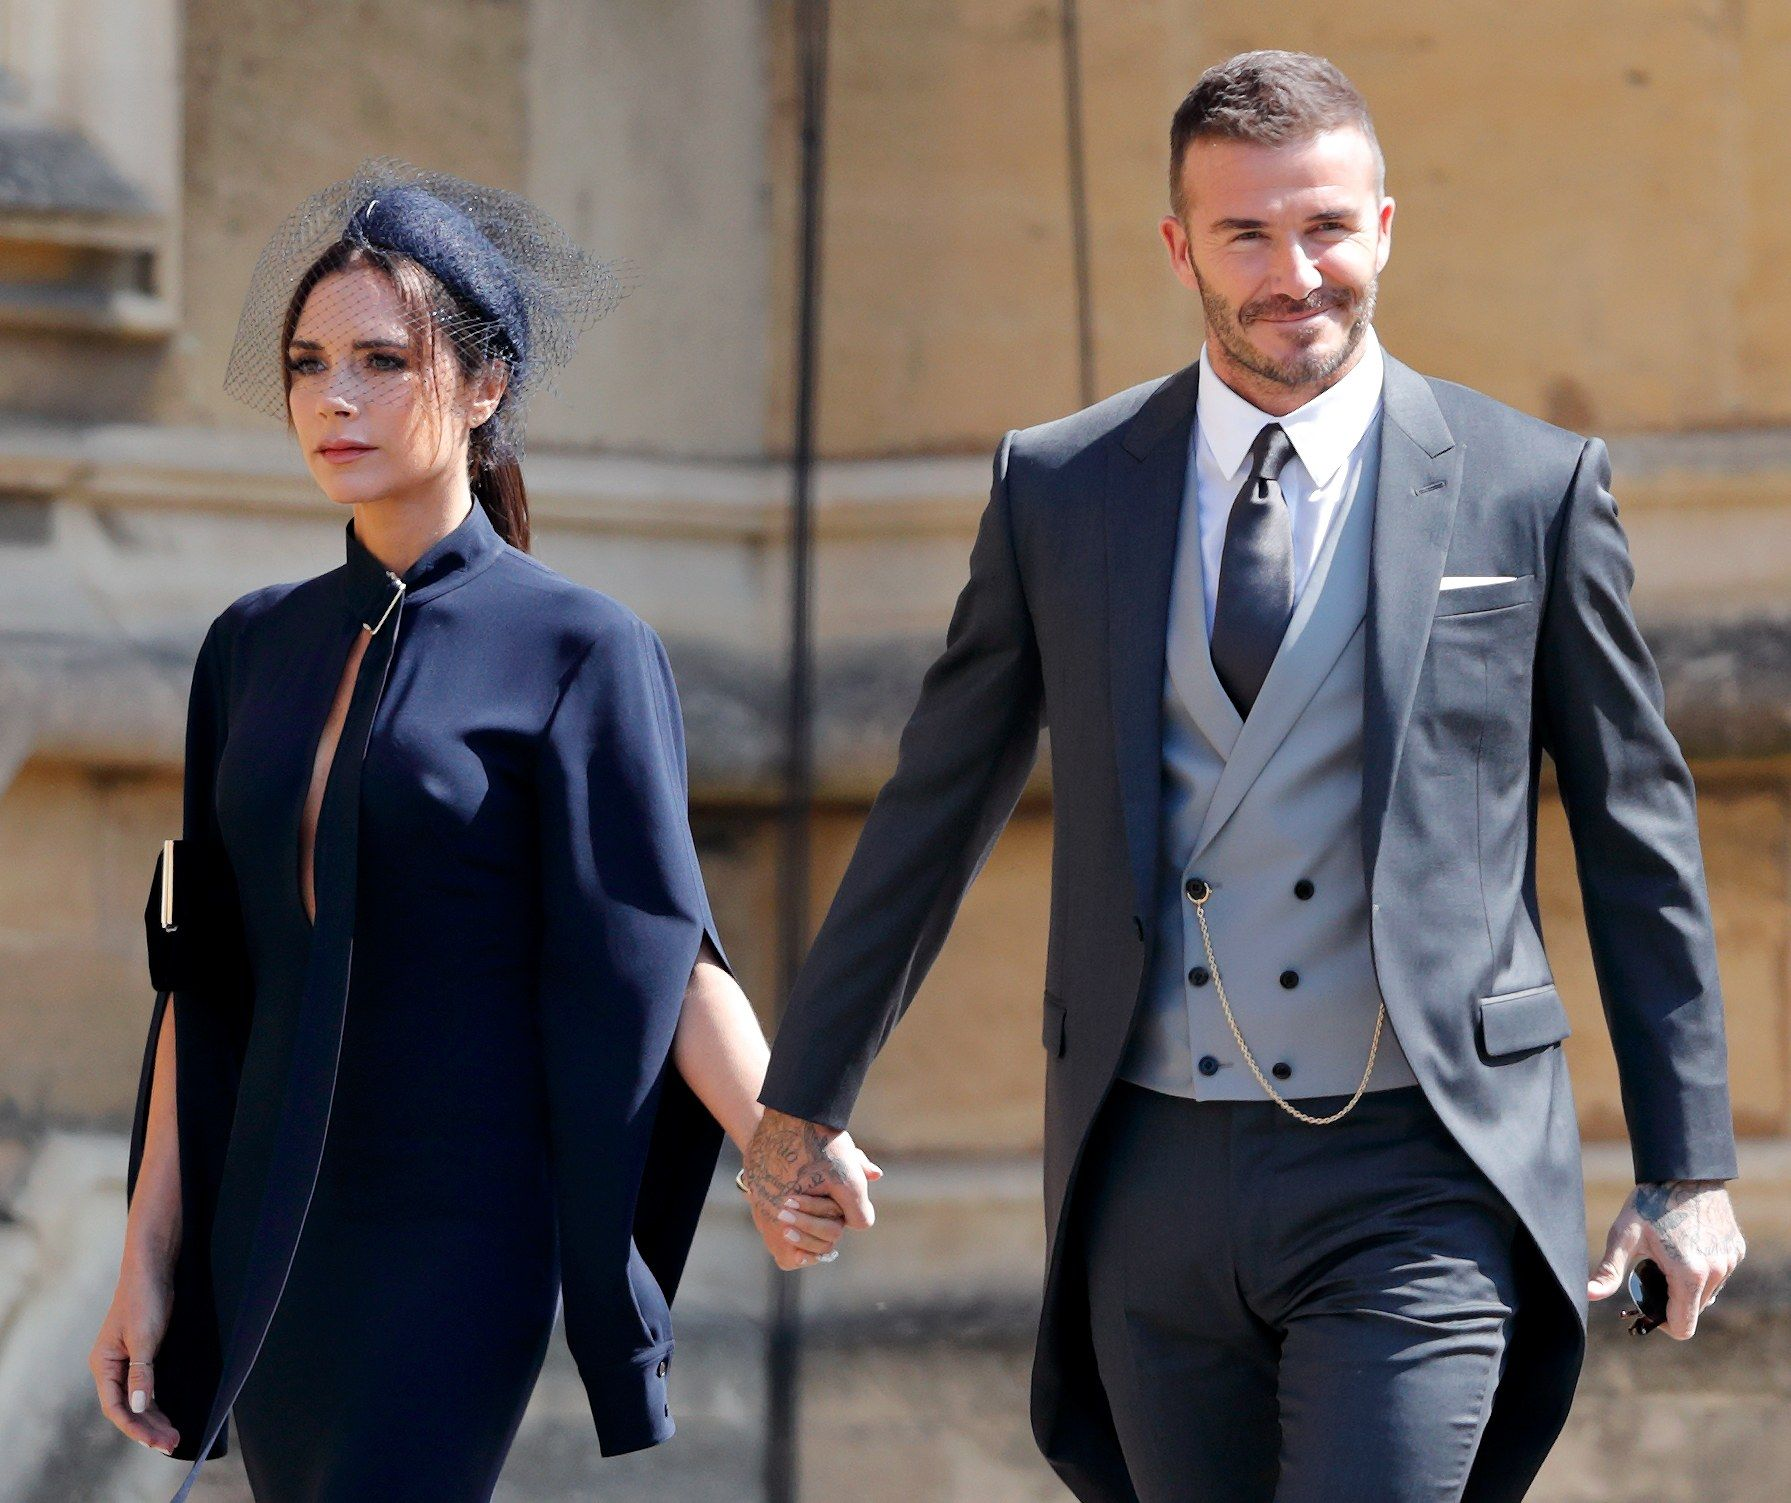 Celebrity Weddings And Engagements Victoria Beckham Victoria Beckham Dress Victoria Beckham Style